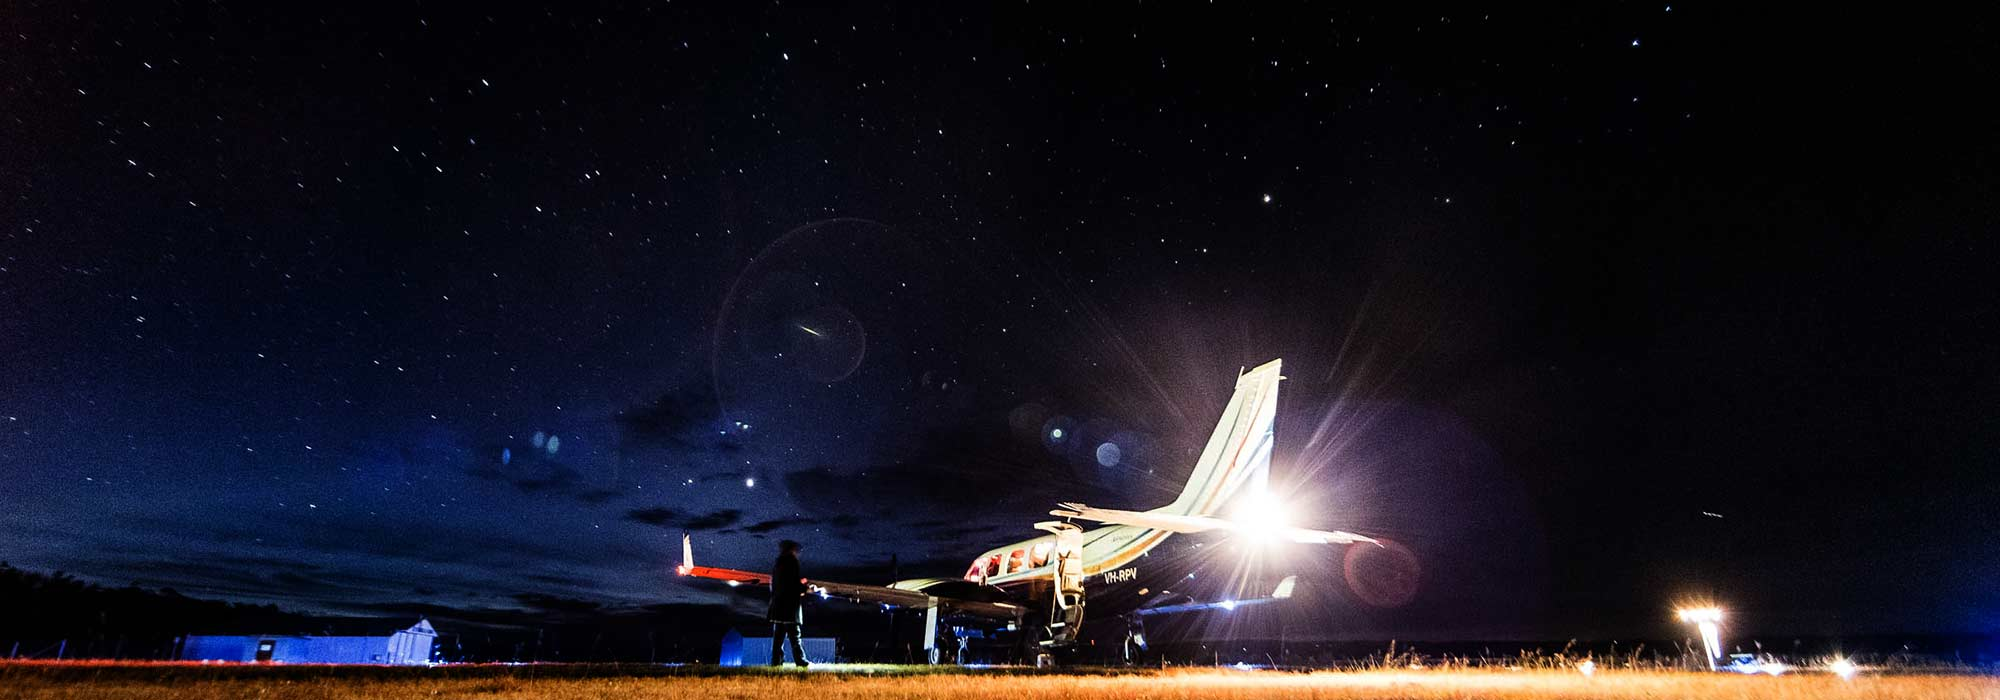 Aircraft Charter | Air Charter | Charter Flights - Stanthorpe night operations